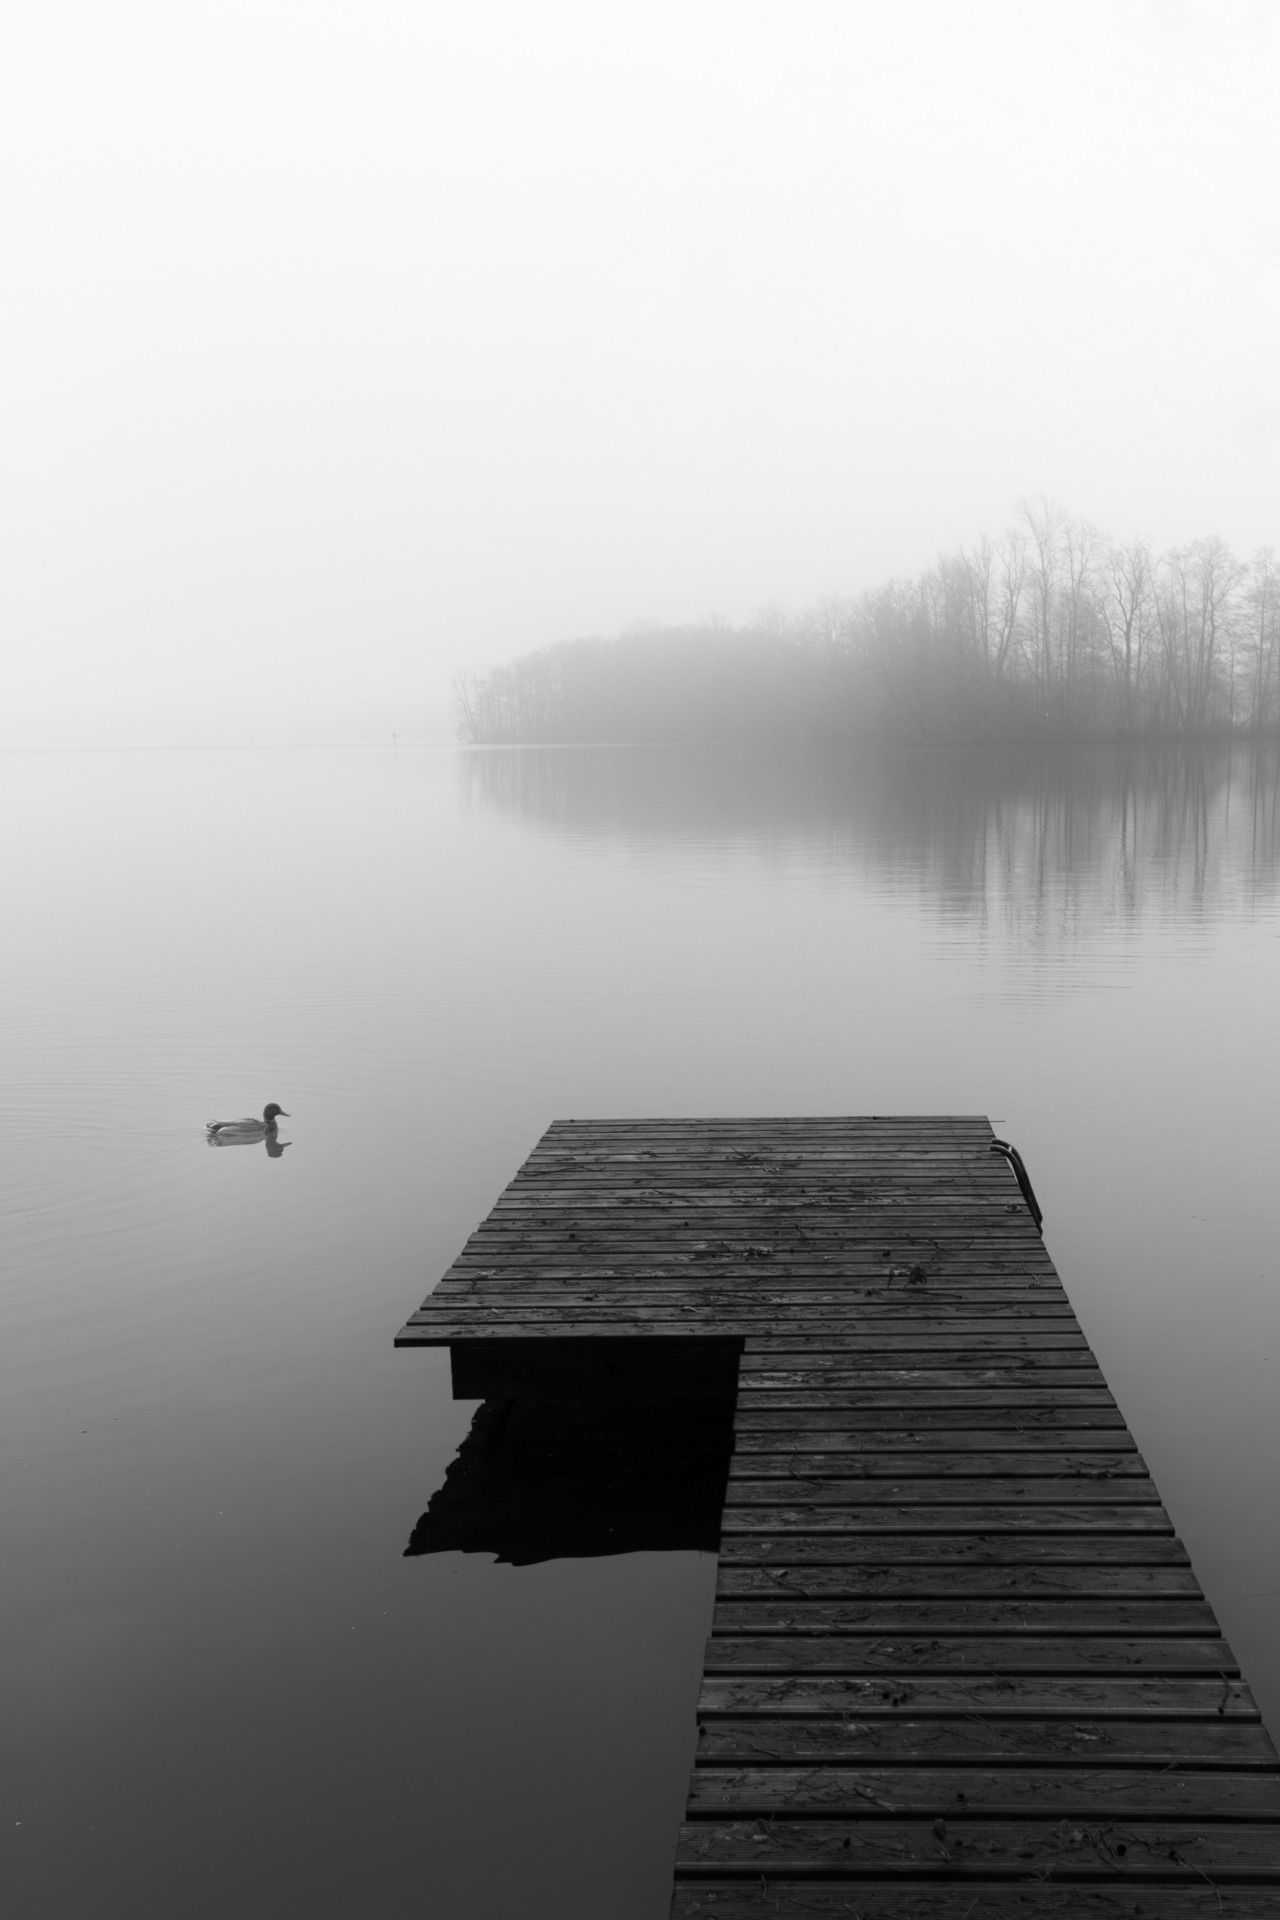 Tranquility - #bad #edited #fog #friday #landscape #meolog #on #photographers #saarow #scharmützelsee #seriously #source: #tumblr